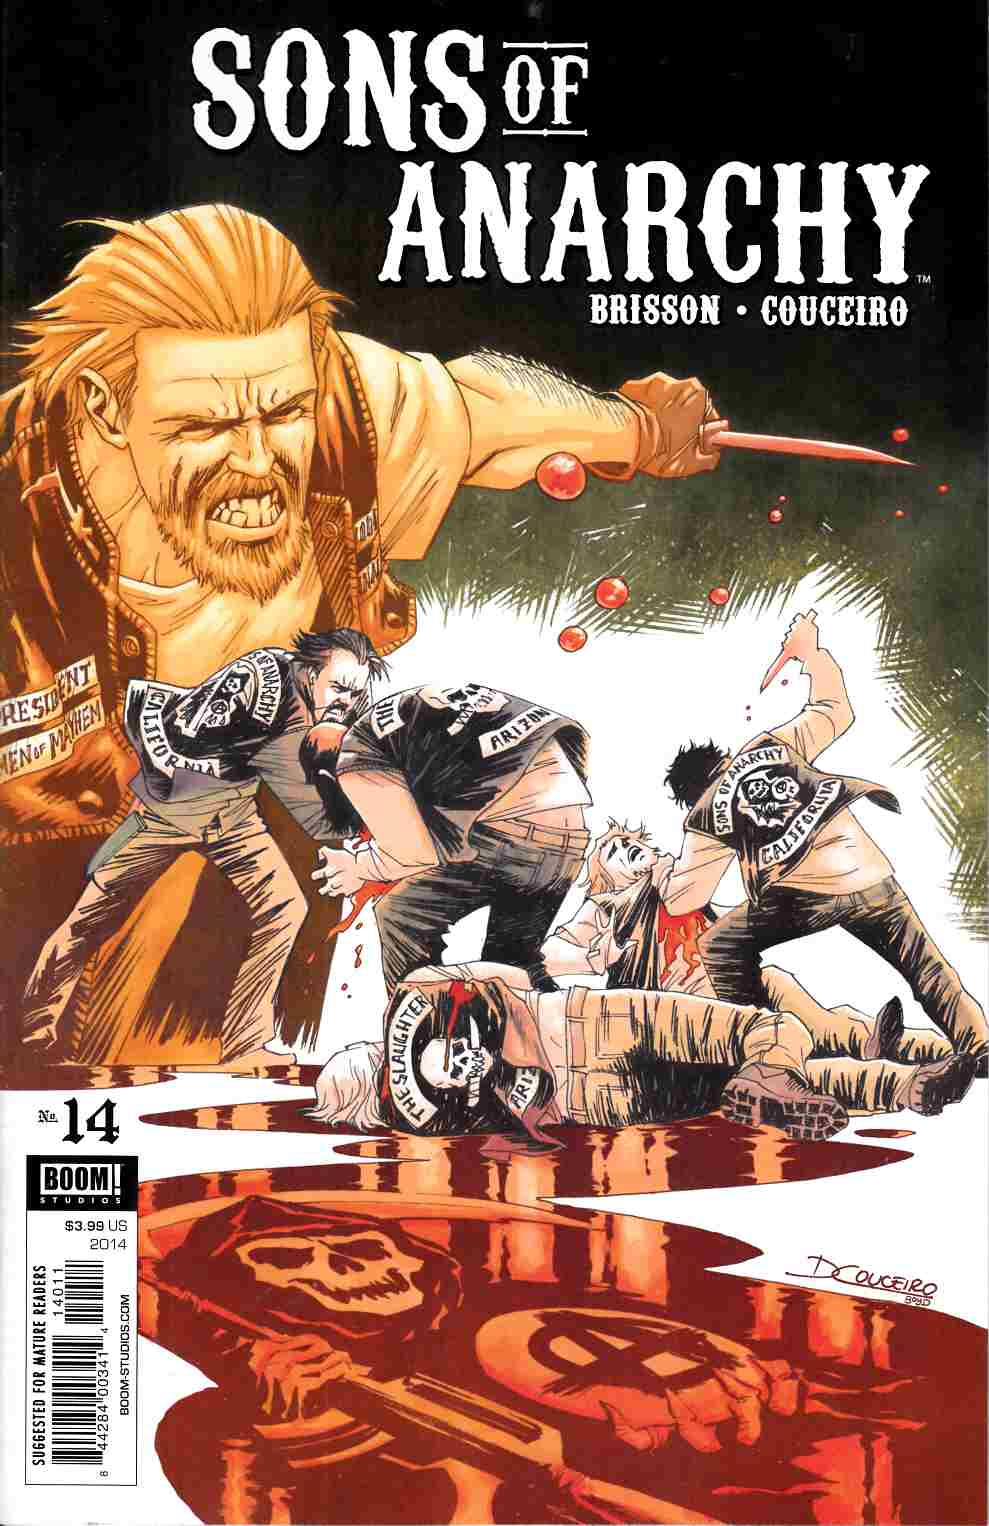 Sons of Anarchy #14 [Boom Comic] THUMBNAIL